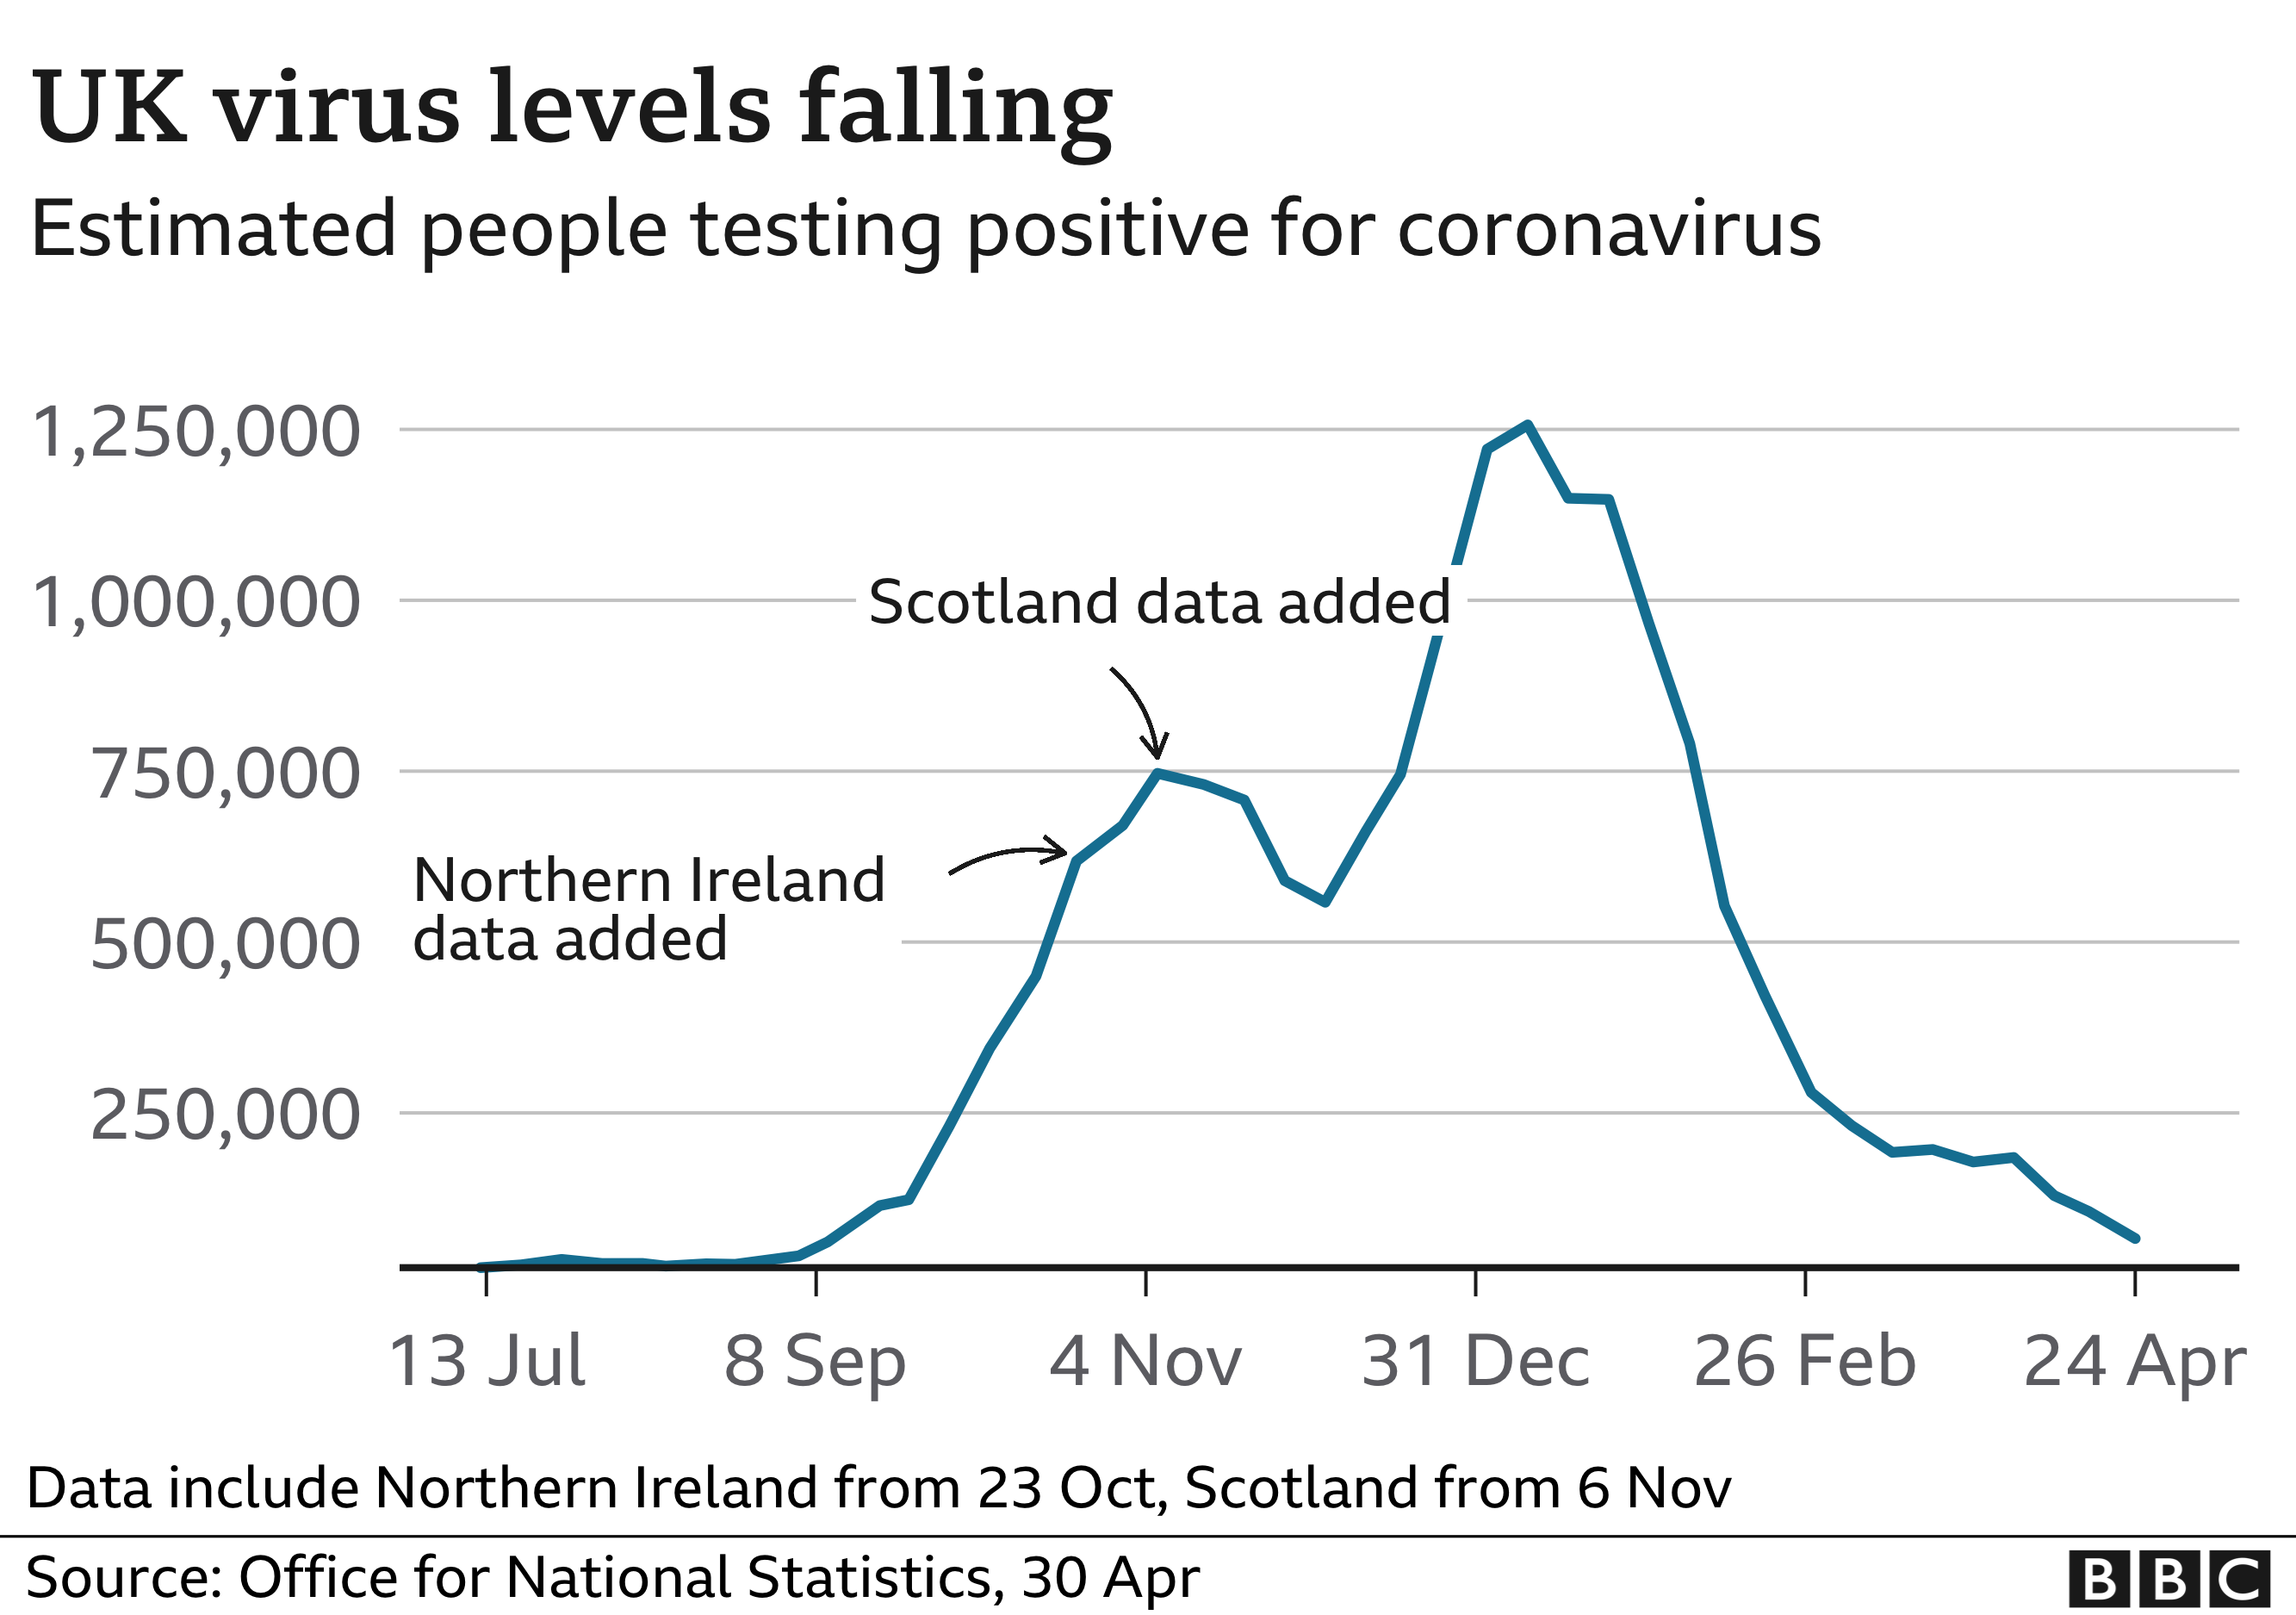 UK virus levels continue to fall